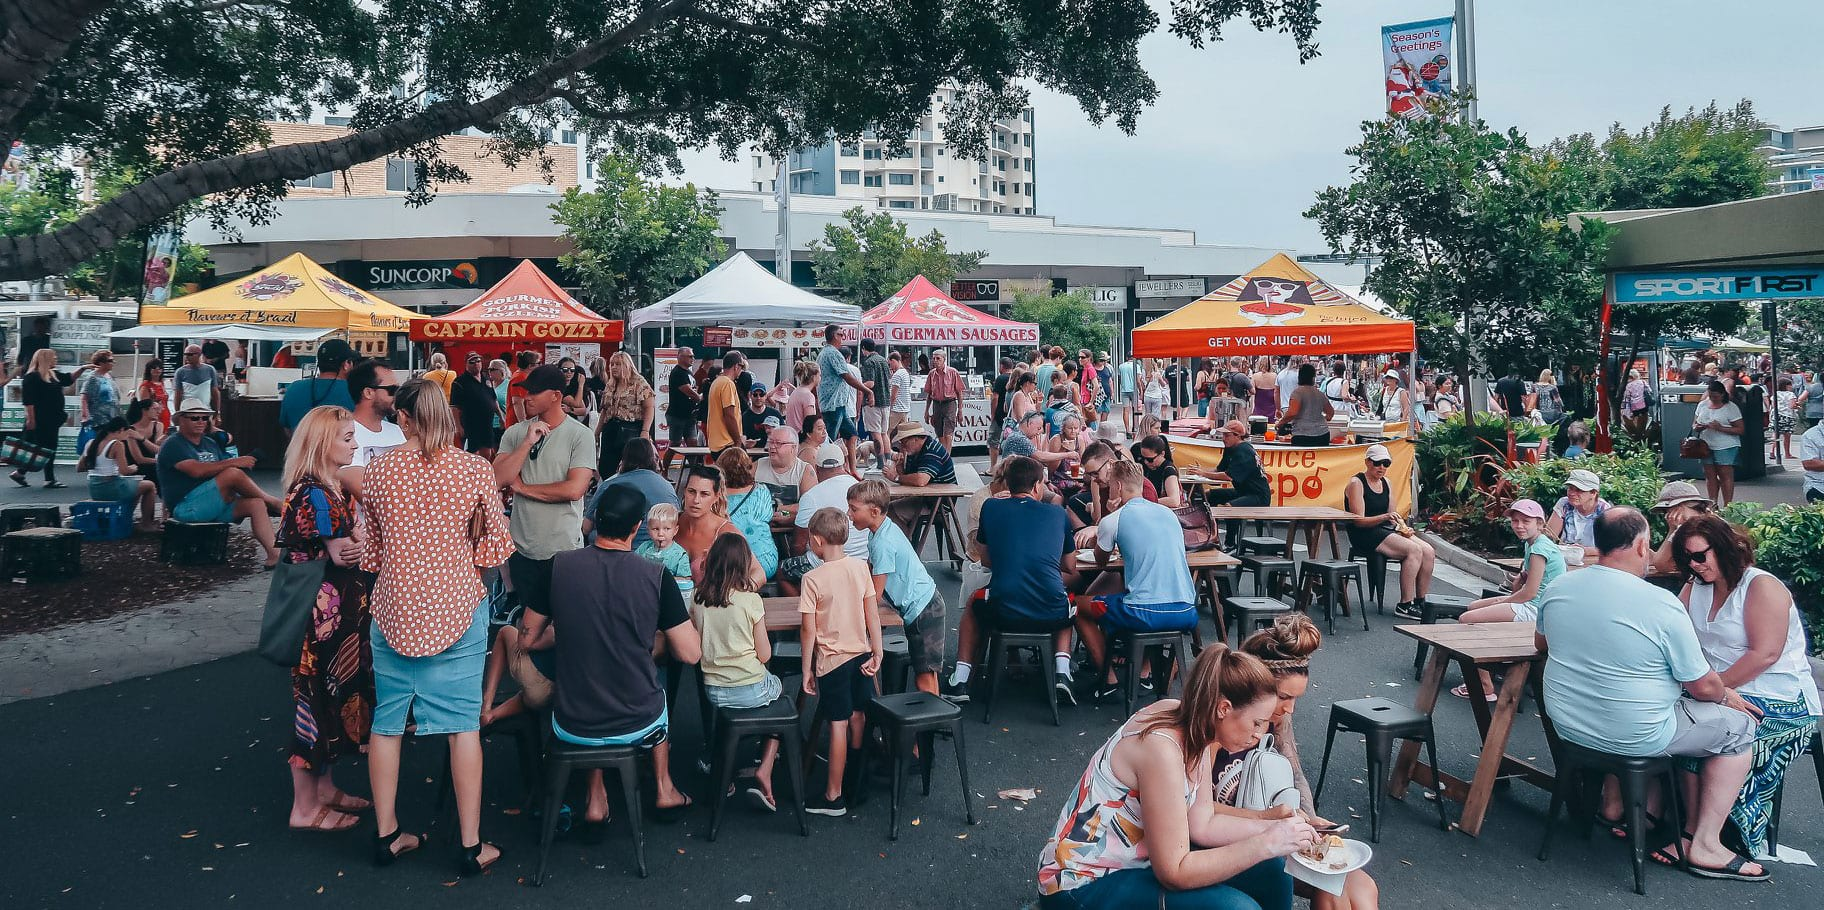 caloundra street fair food court